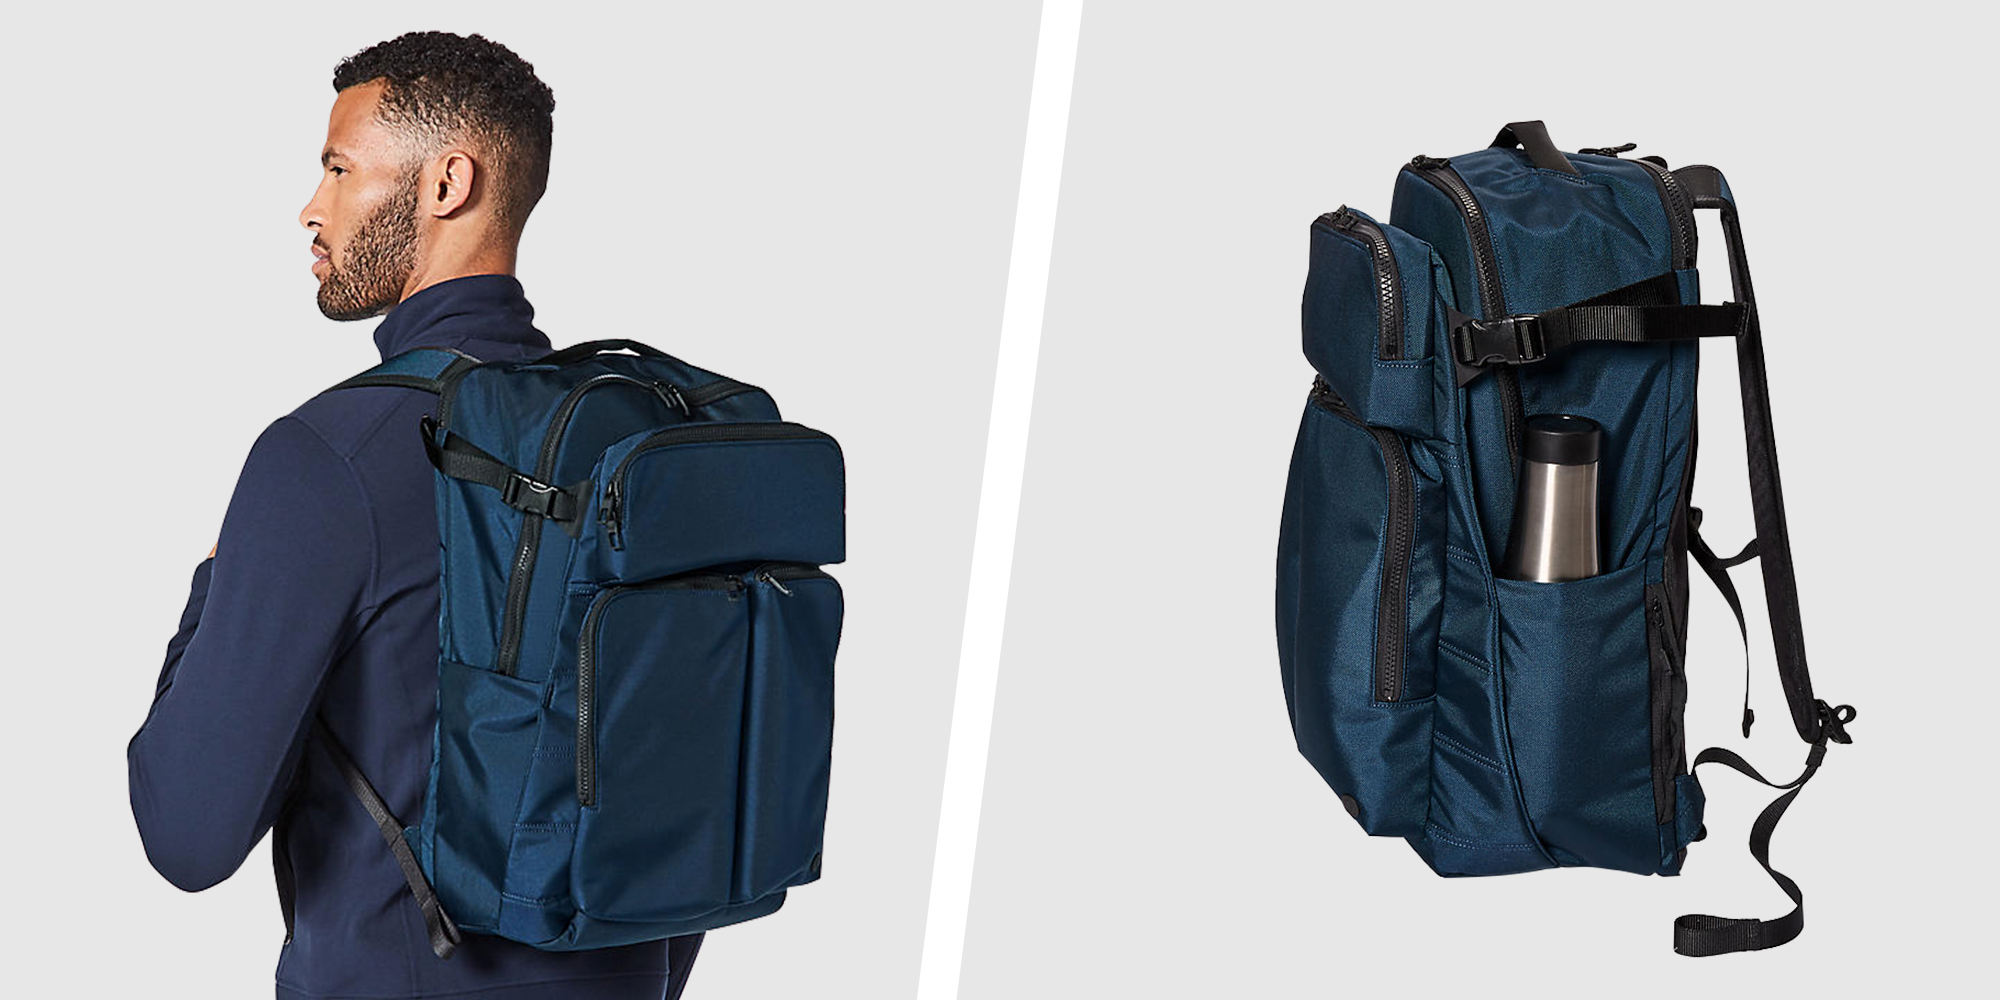 Gym bags with shoe compartments